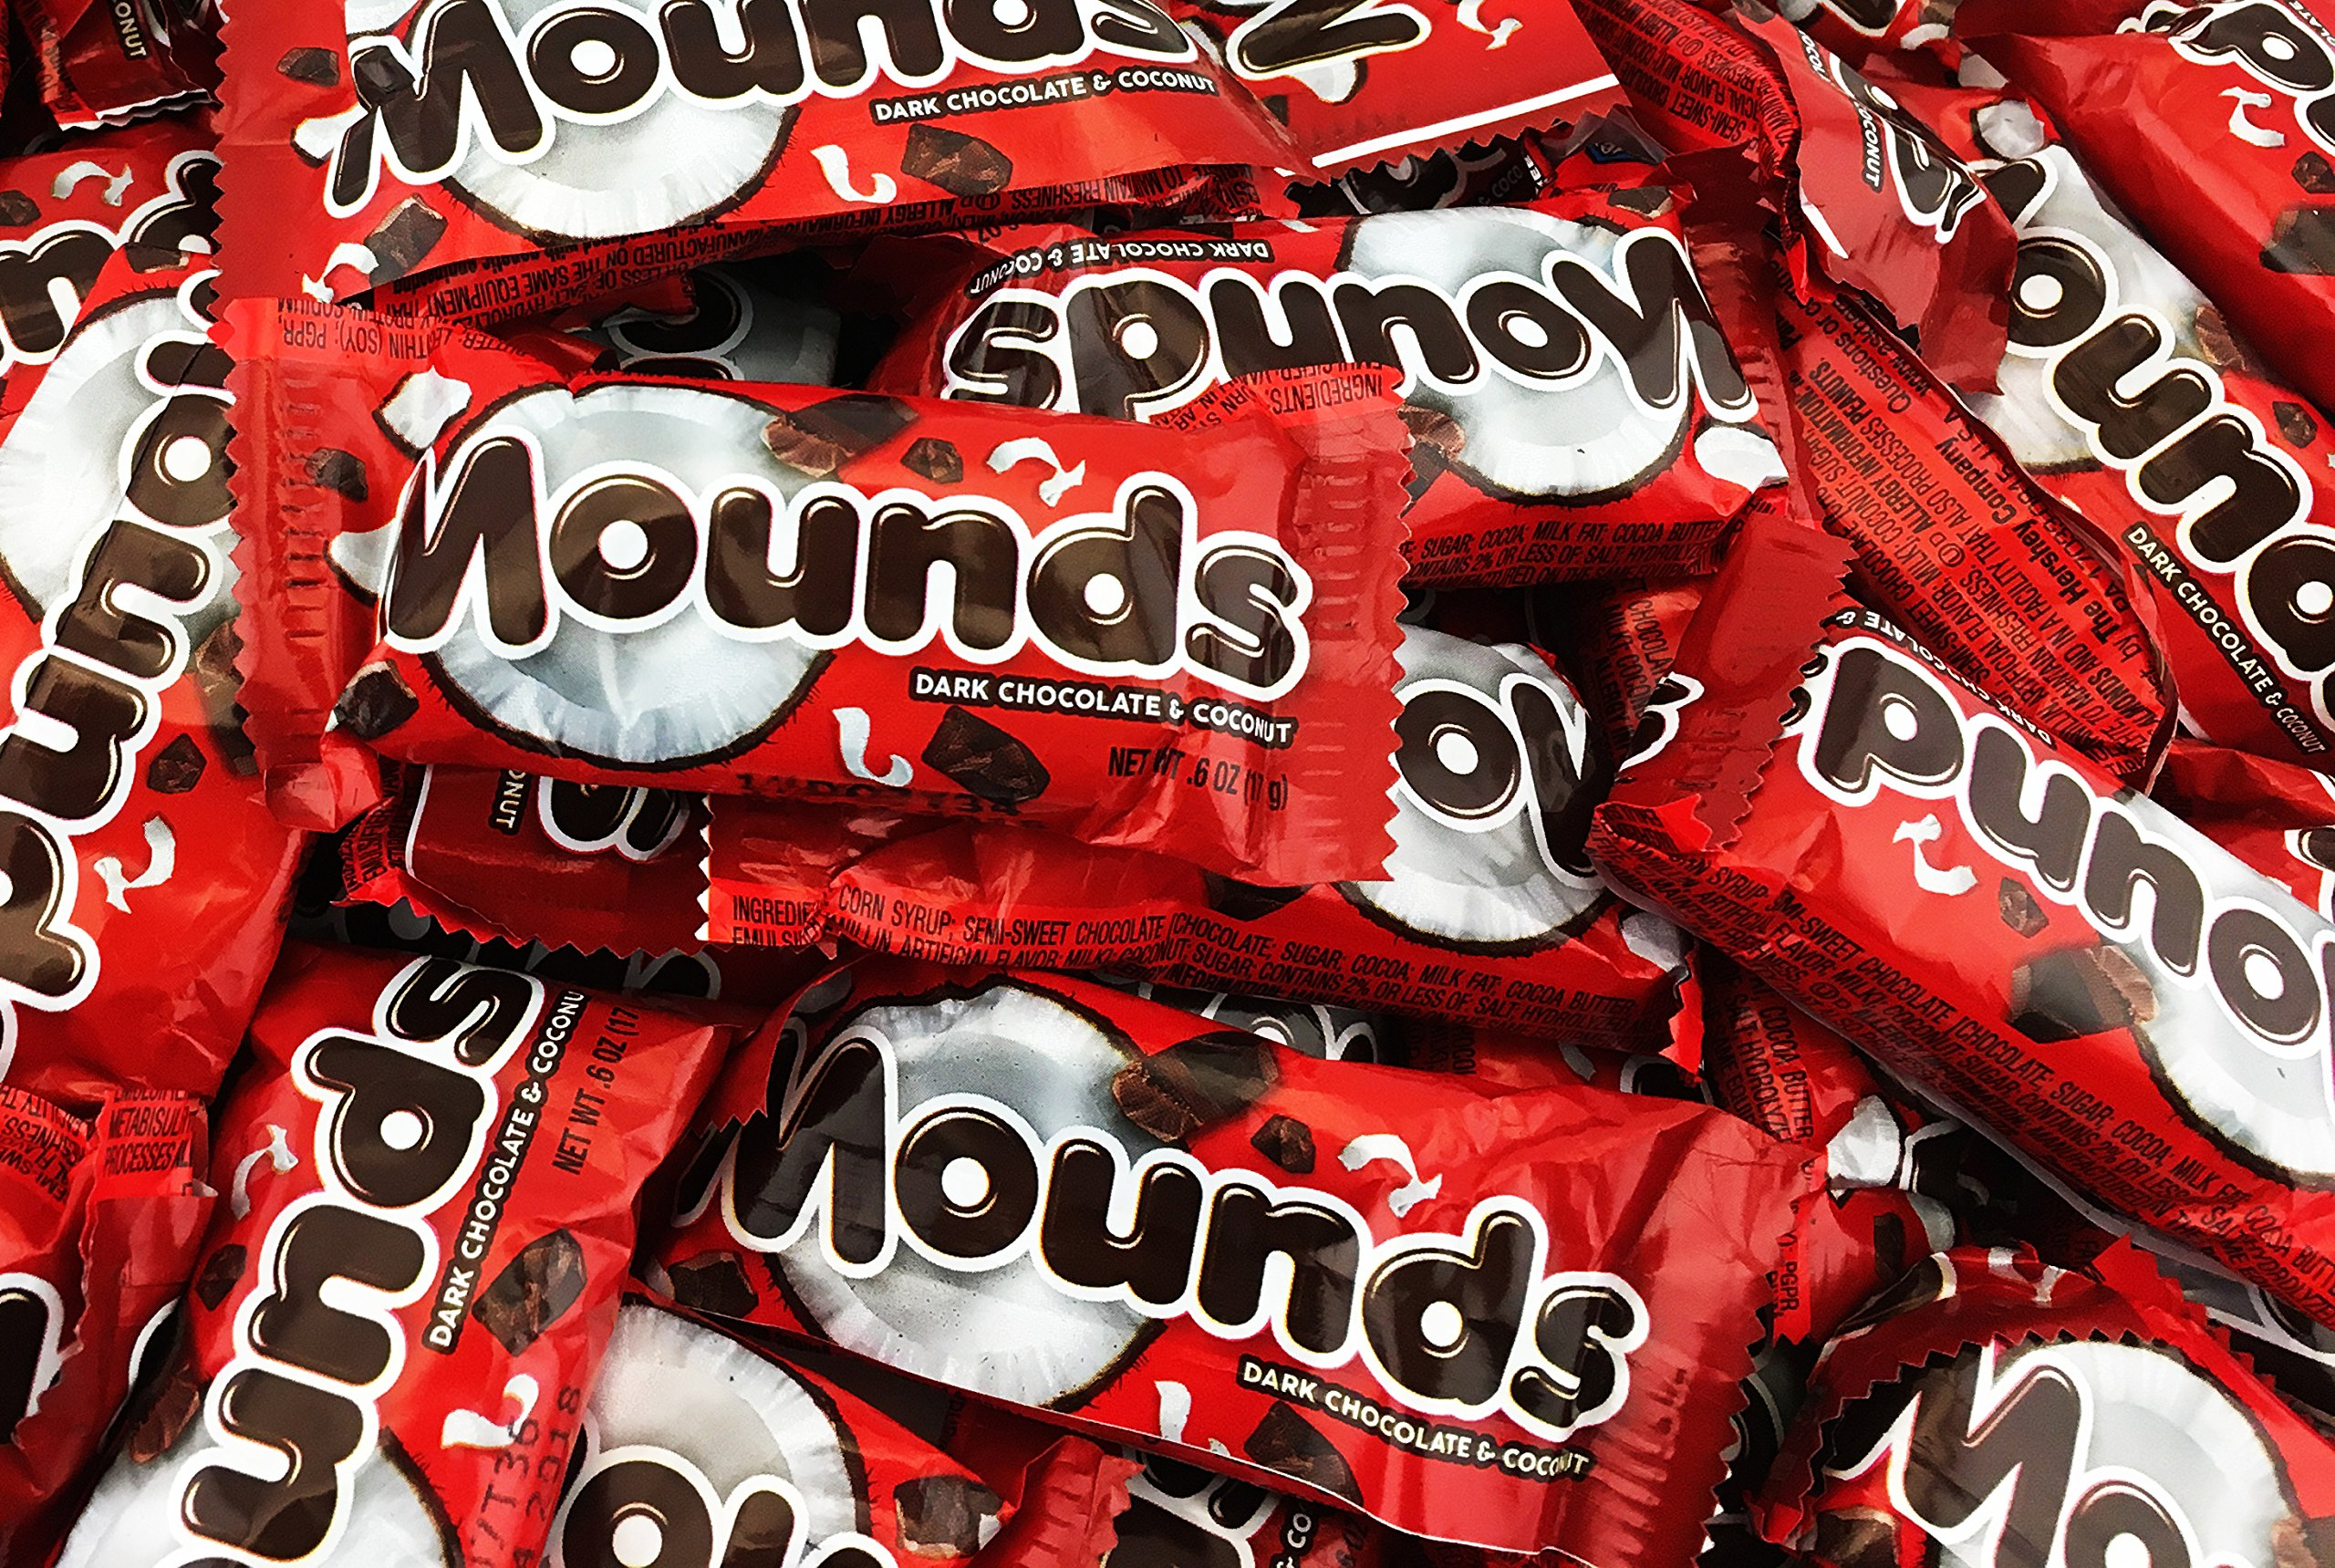 Mounds Dark Chocolate Coconut Filled Snack Size Treats, 0.6 Ounce (Pack of 3 Pounds)